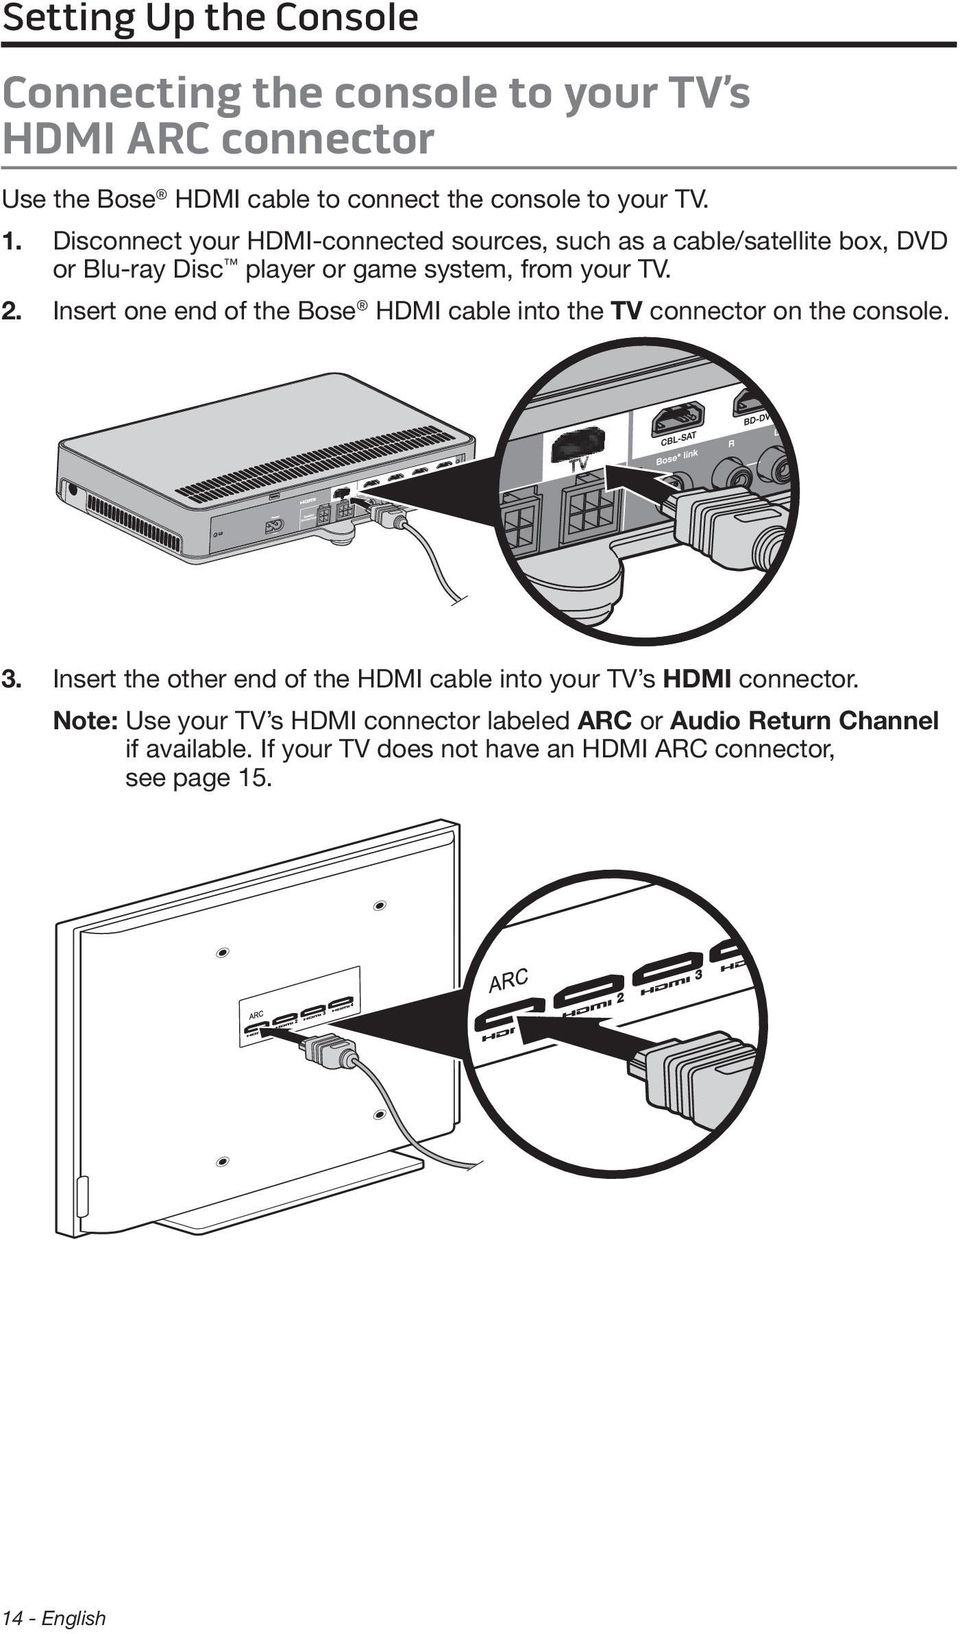 Insert one end of the Bose HDMI cable into the TV connector on the console. 3.